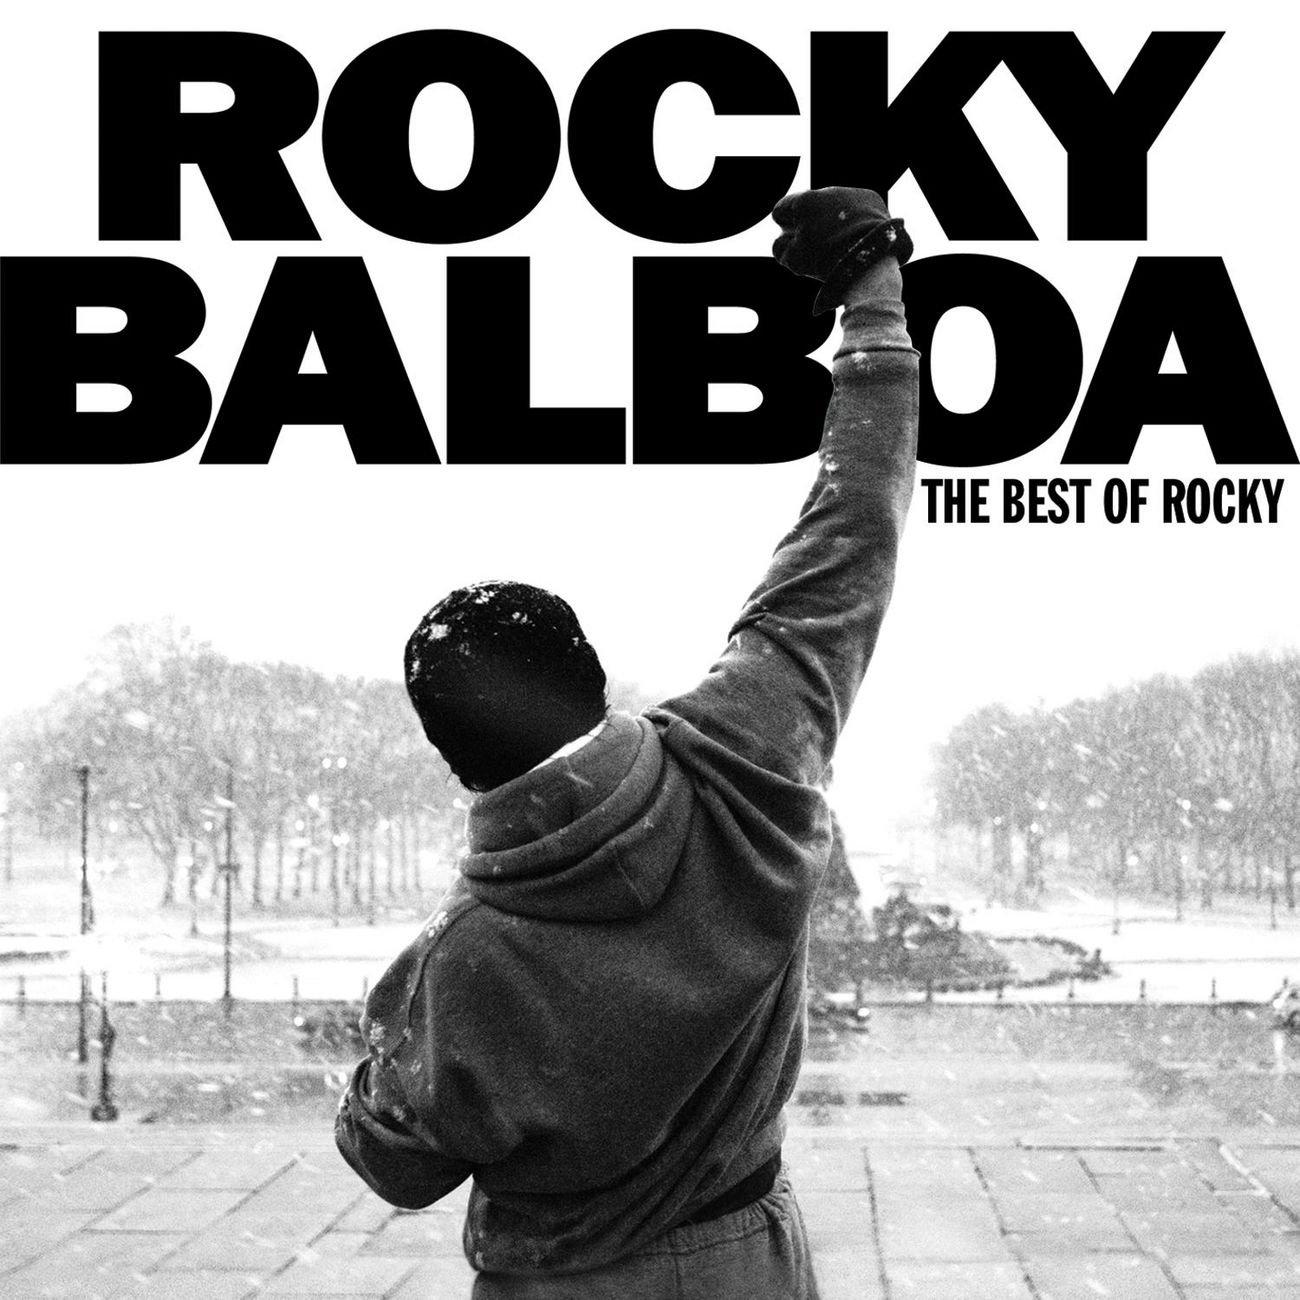 soundtrack rocky balboa the best of rocky amazon music Desenho the Last of Us